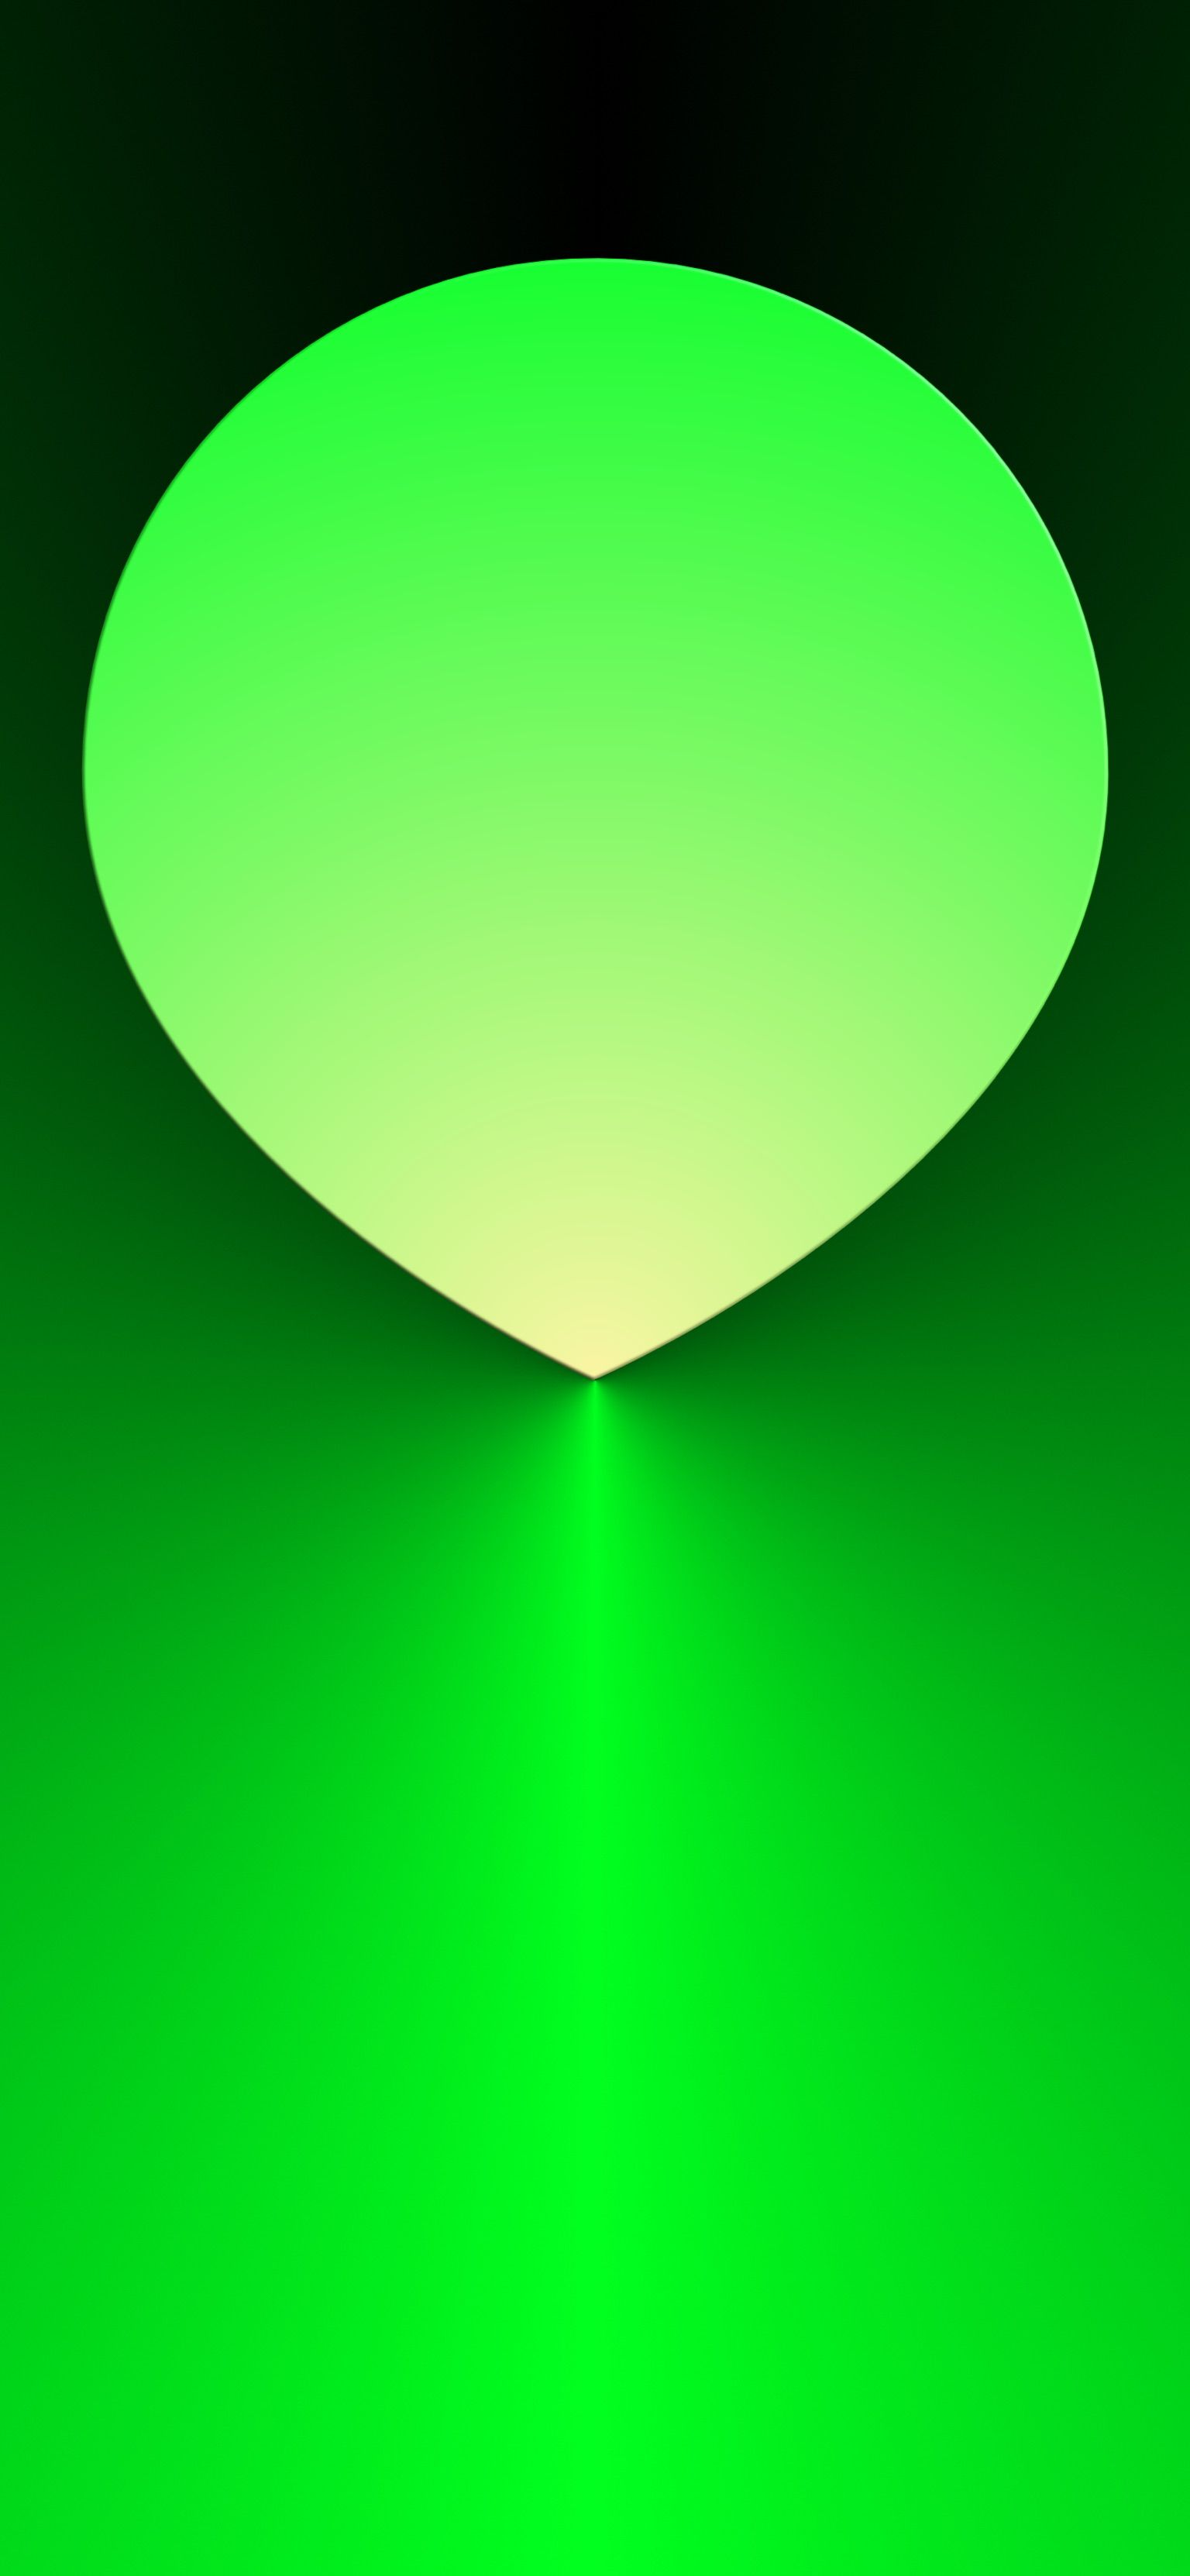 Download Latest Green Phone Wallpaper HD Today by hotspot4u.net